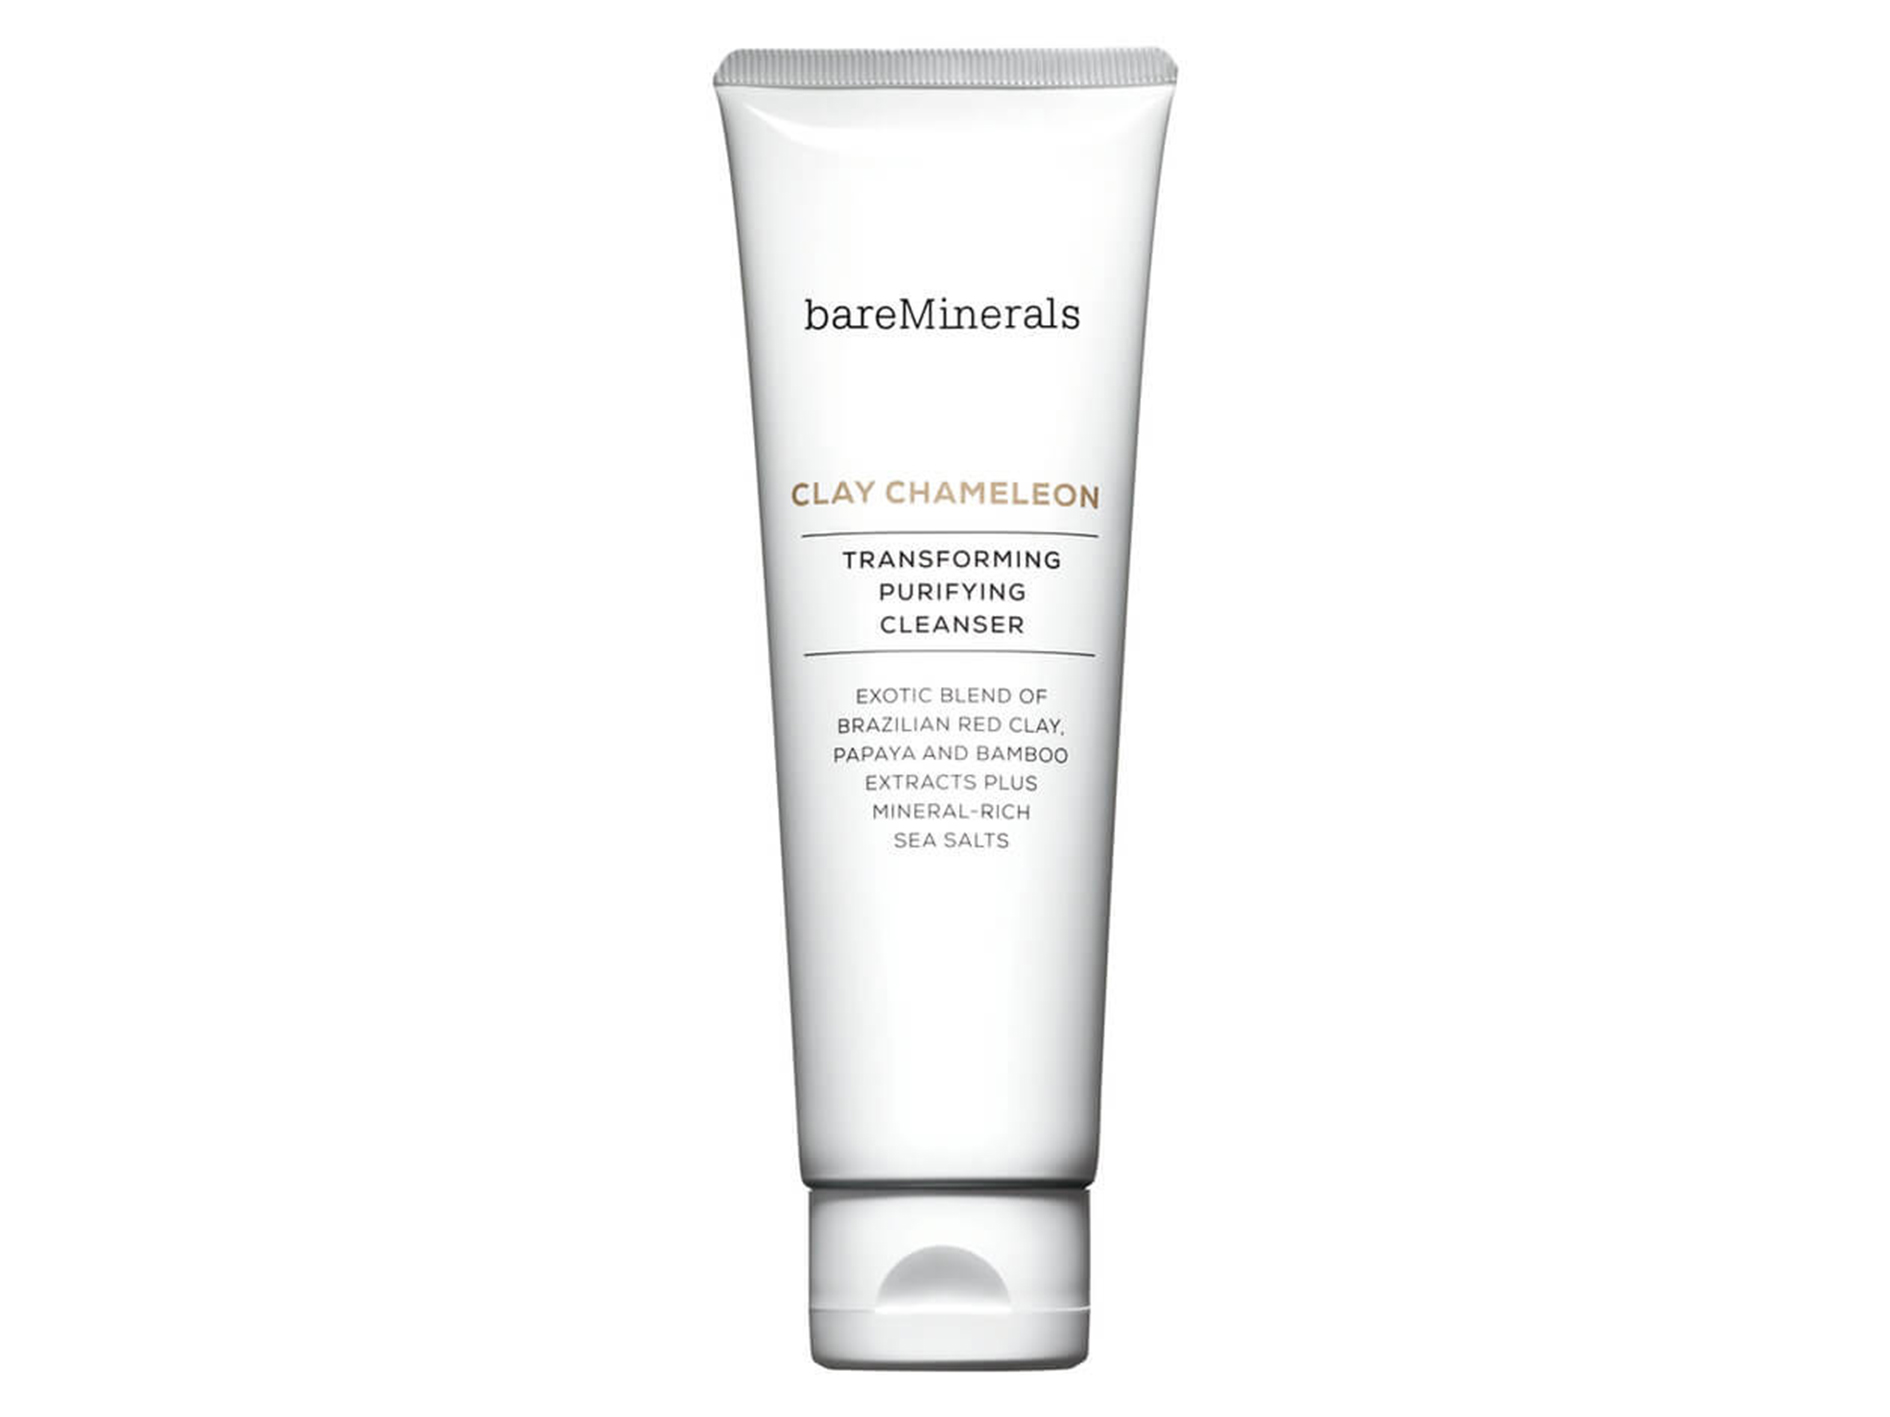 Bareminerals Clay Chameleon Transforming Purifying Cleanser$38 - Massage this gentle clay cleanser into skin, and the blend of purifying Brazilian red clay and mineral-rich sea salts, papaya, and bamboo extracts will clean and clarify your complexion.